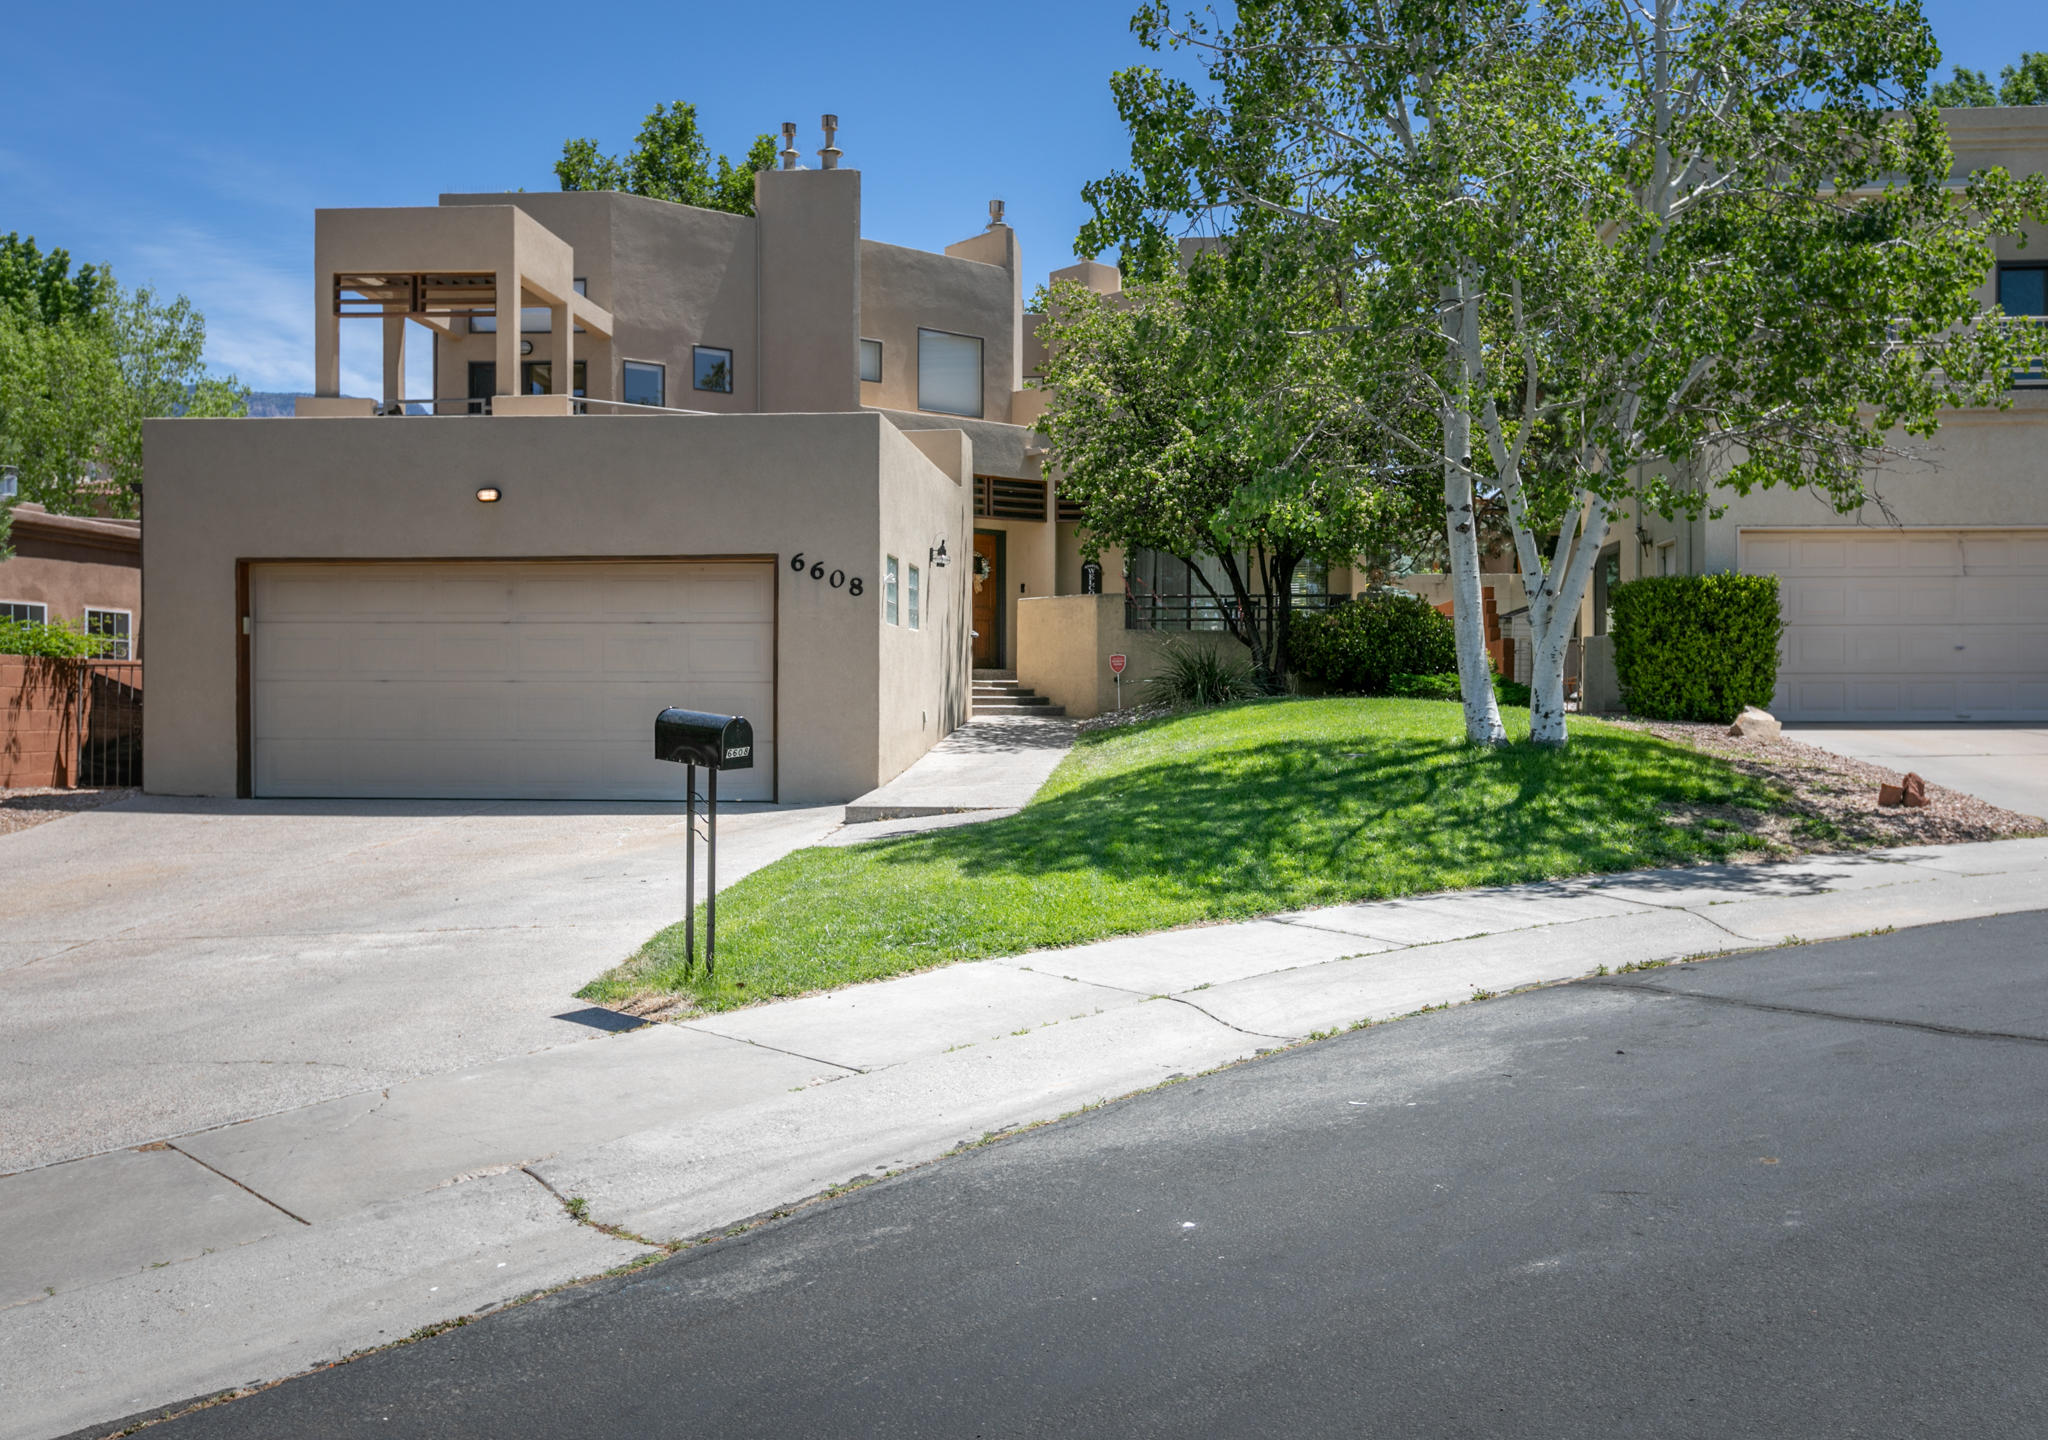 6608 Wentworth NE Property Photo - Albuquerque, NM real estate listing